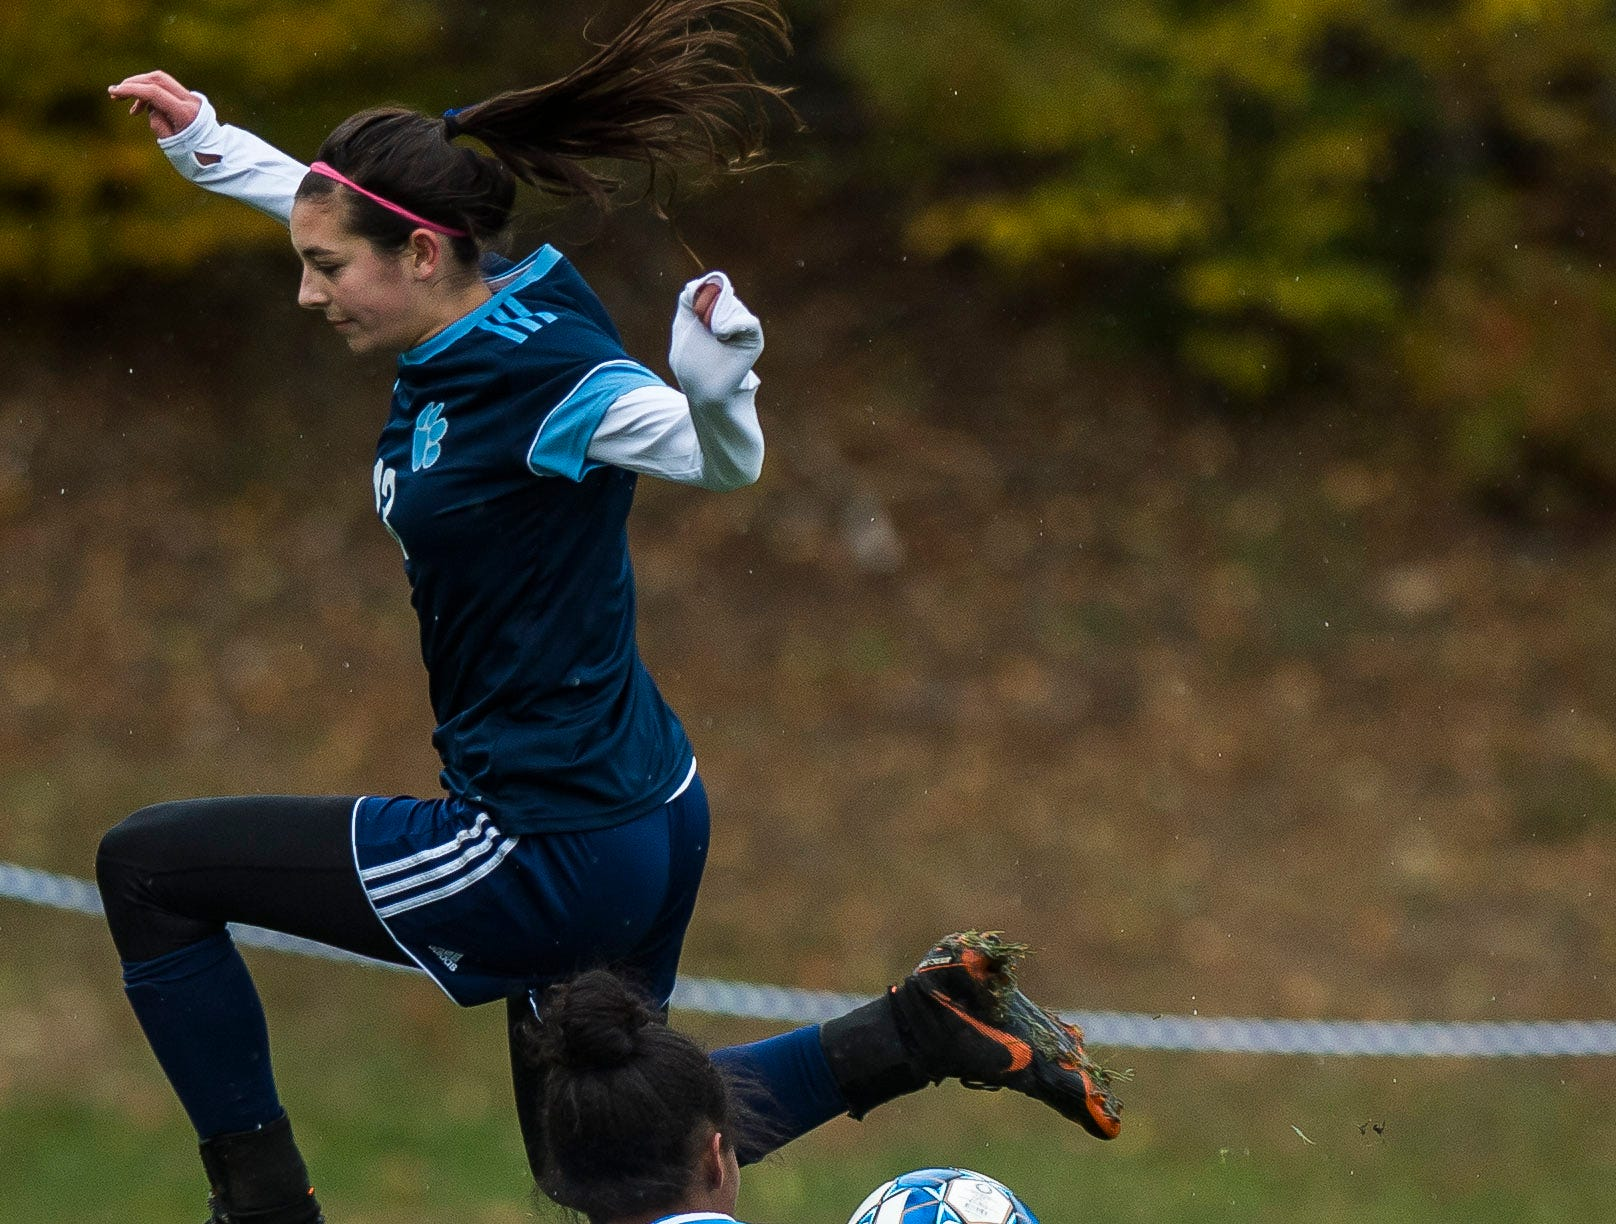 MMU #13 Macey Wissell is intercepted by Essex goalie Yasmine Nsame during their quarter-final game in Jericho on Saturday, Oct. 27, 2018, that went into double overtime and shootout. Essex took the penalty kick contest to win, 4-1.